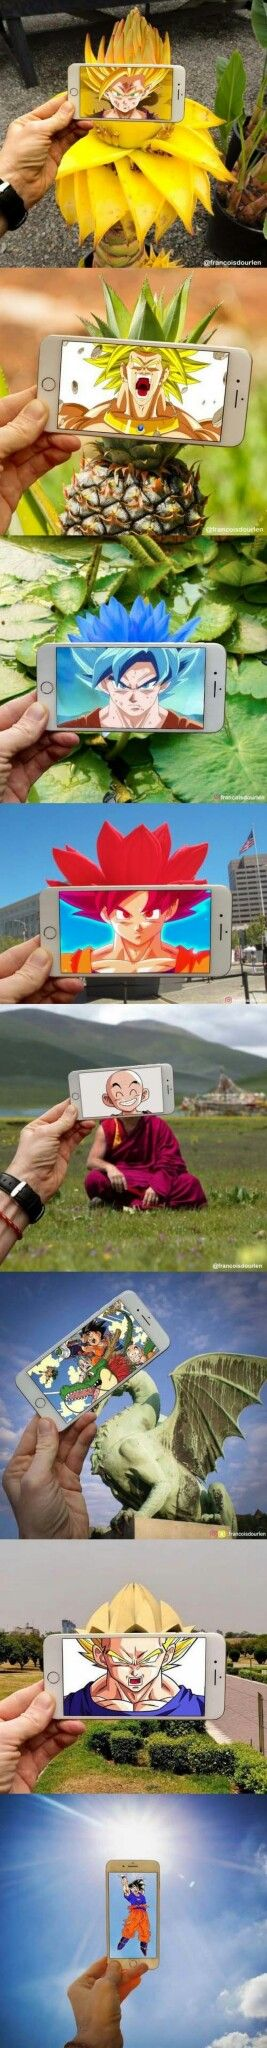 Dragon ball Z phone. Photos and real people